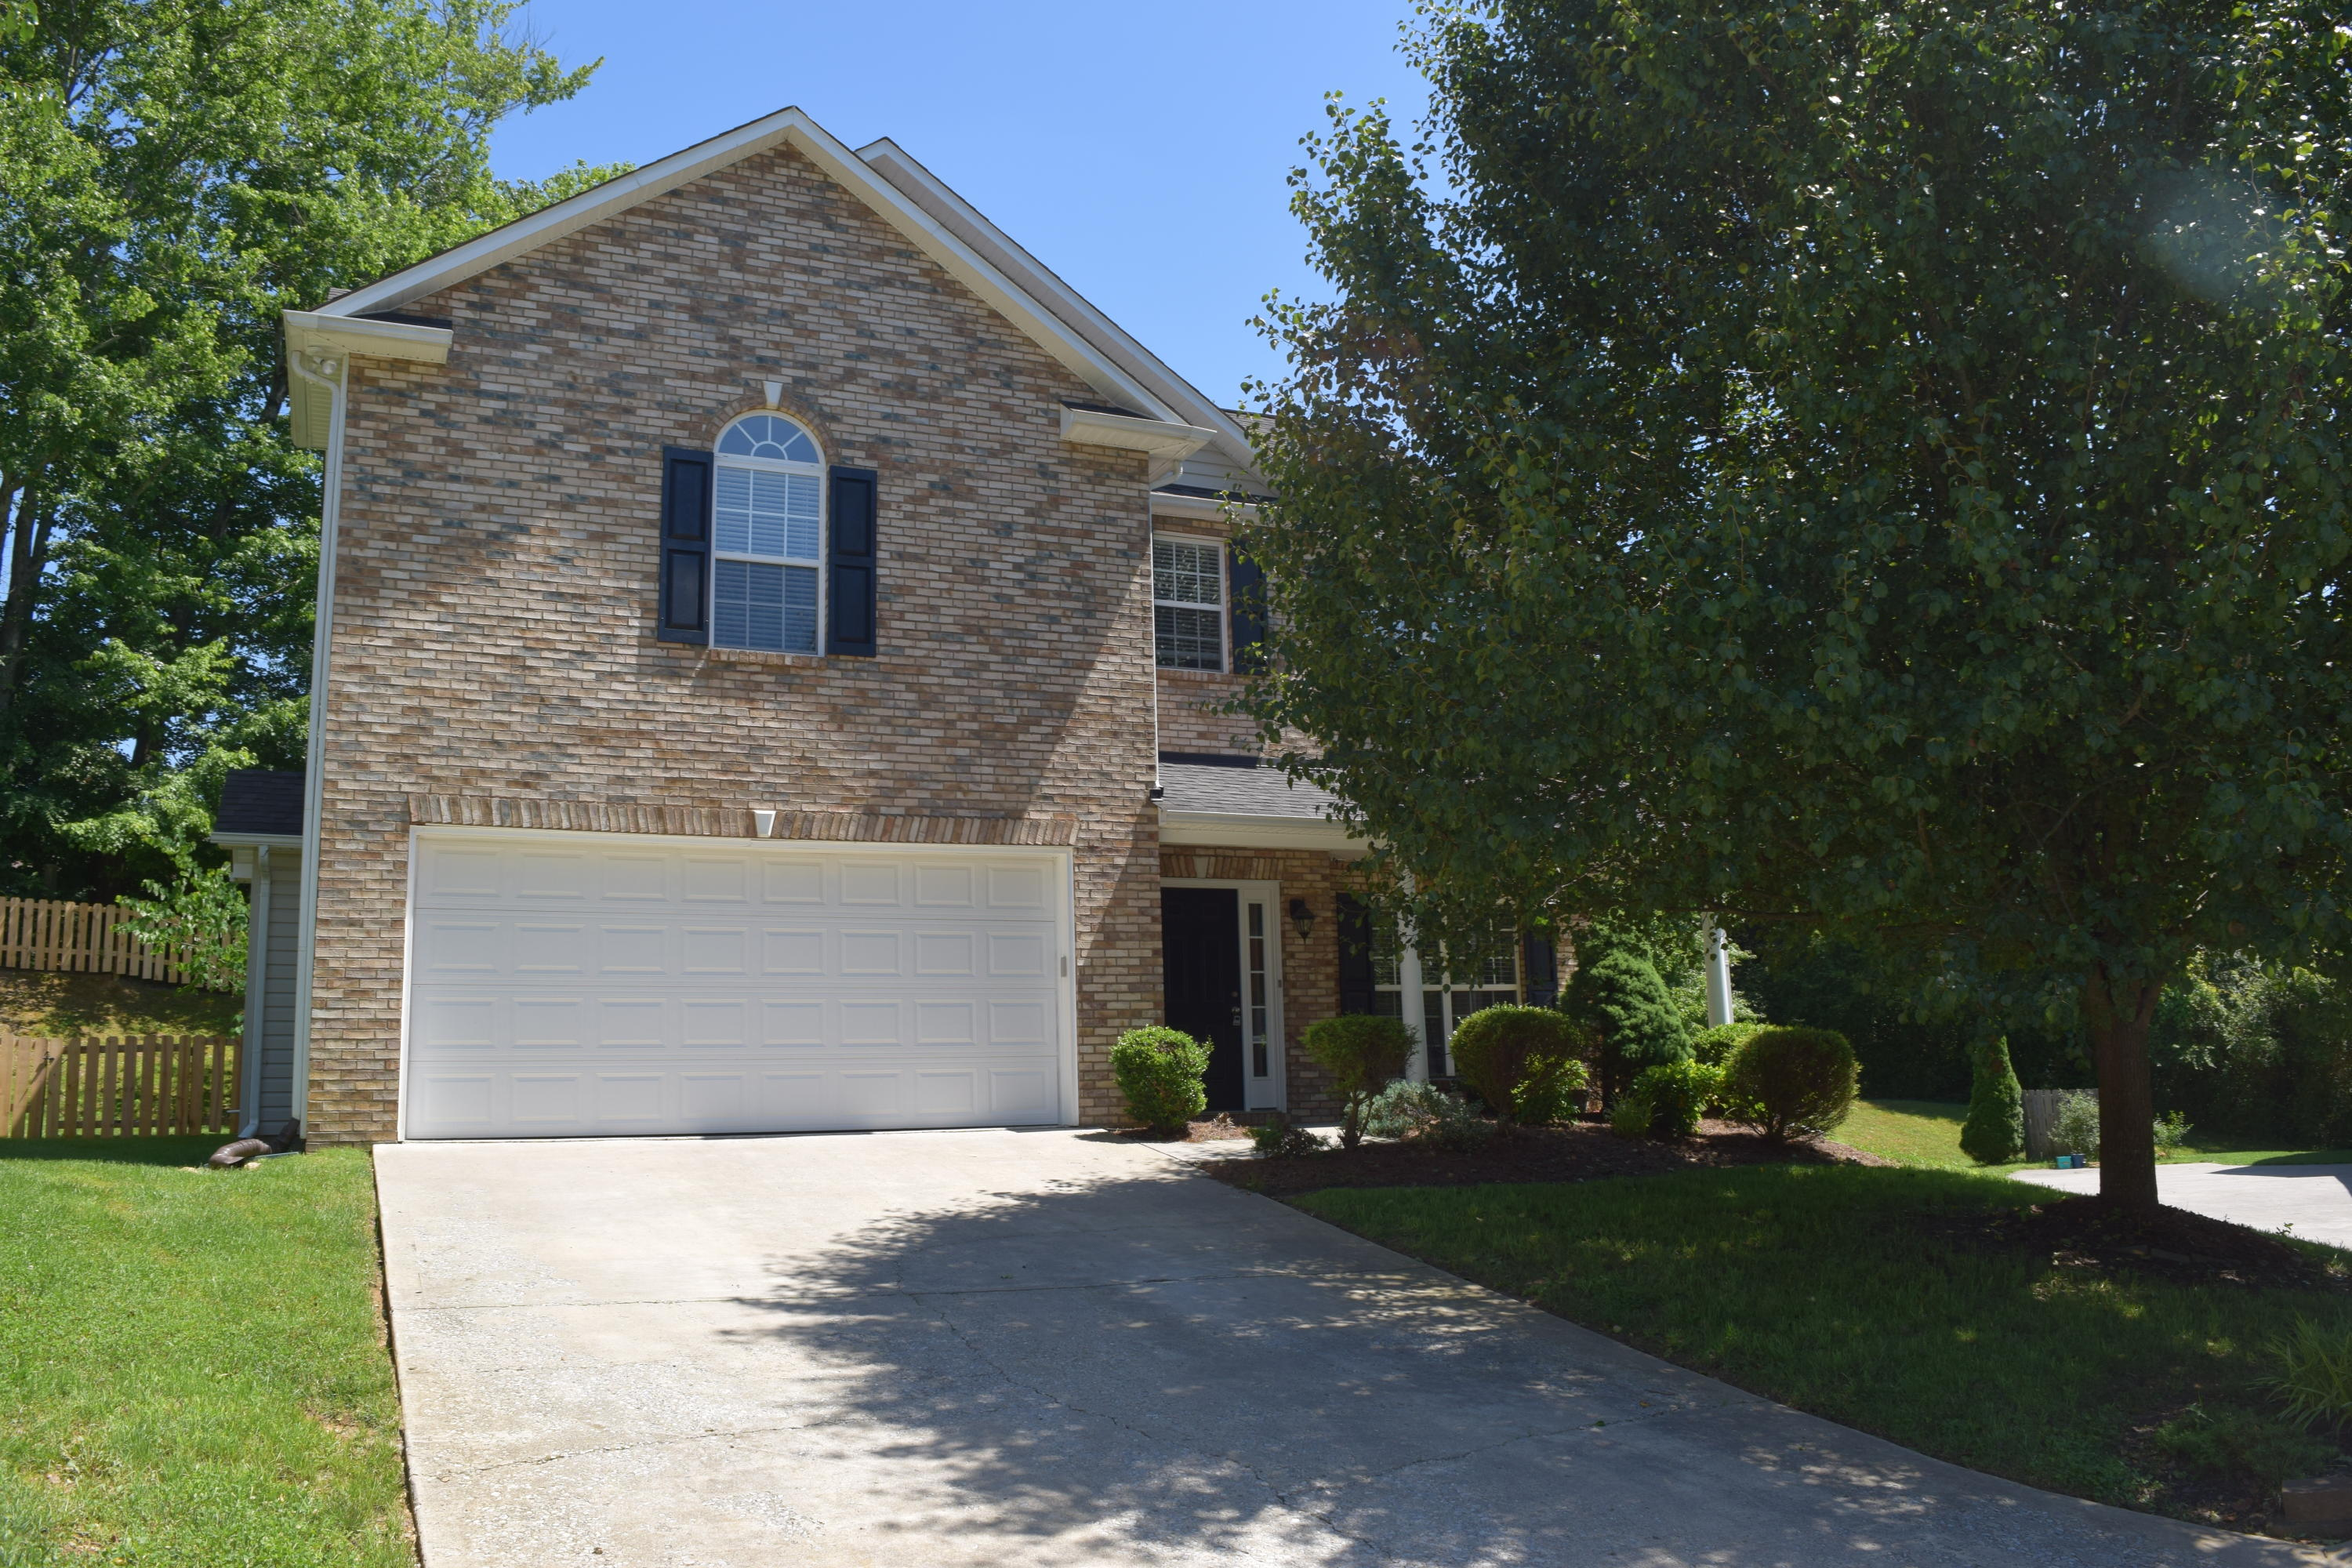 3104 Gose Cove Lane, Knoxville, Tennessee 37931, 4 Bedrooms Bedrooms, ,2 BathroomsBathrooms,Single Family,For Sale,Gose Cove,1130996